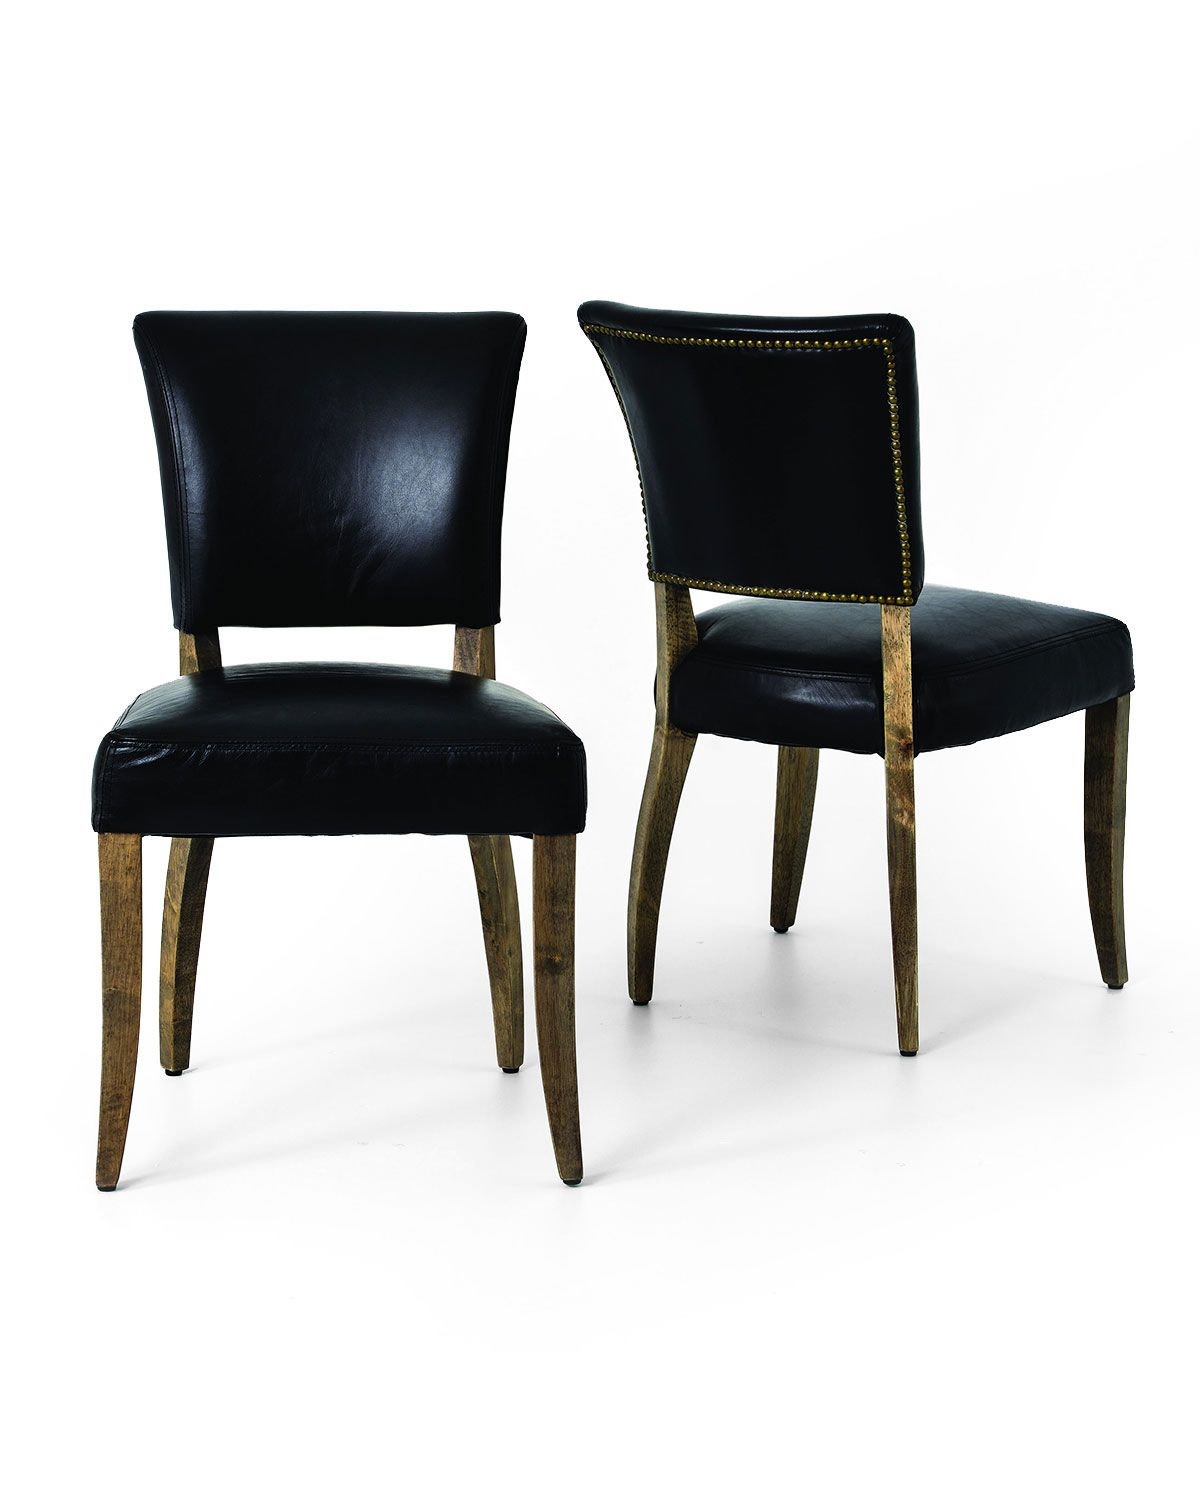 Pendulum Accent Chair Old Saddle Black Chimney: *Chairs > Kitchen & Dining Room